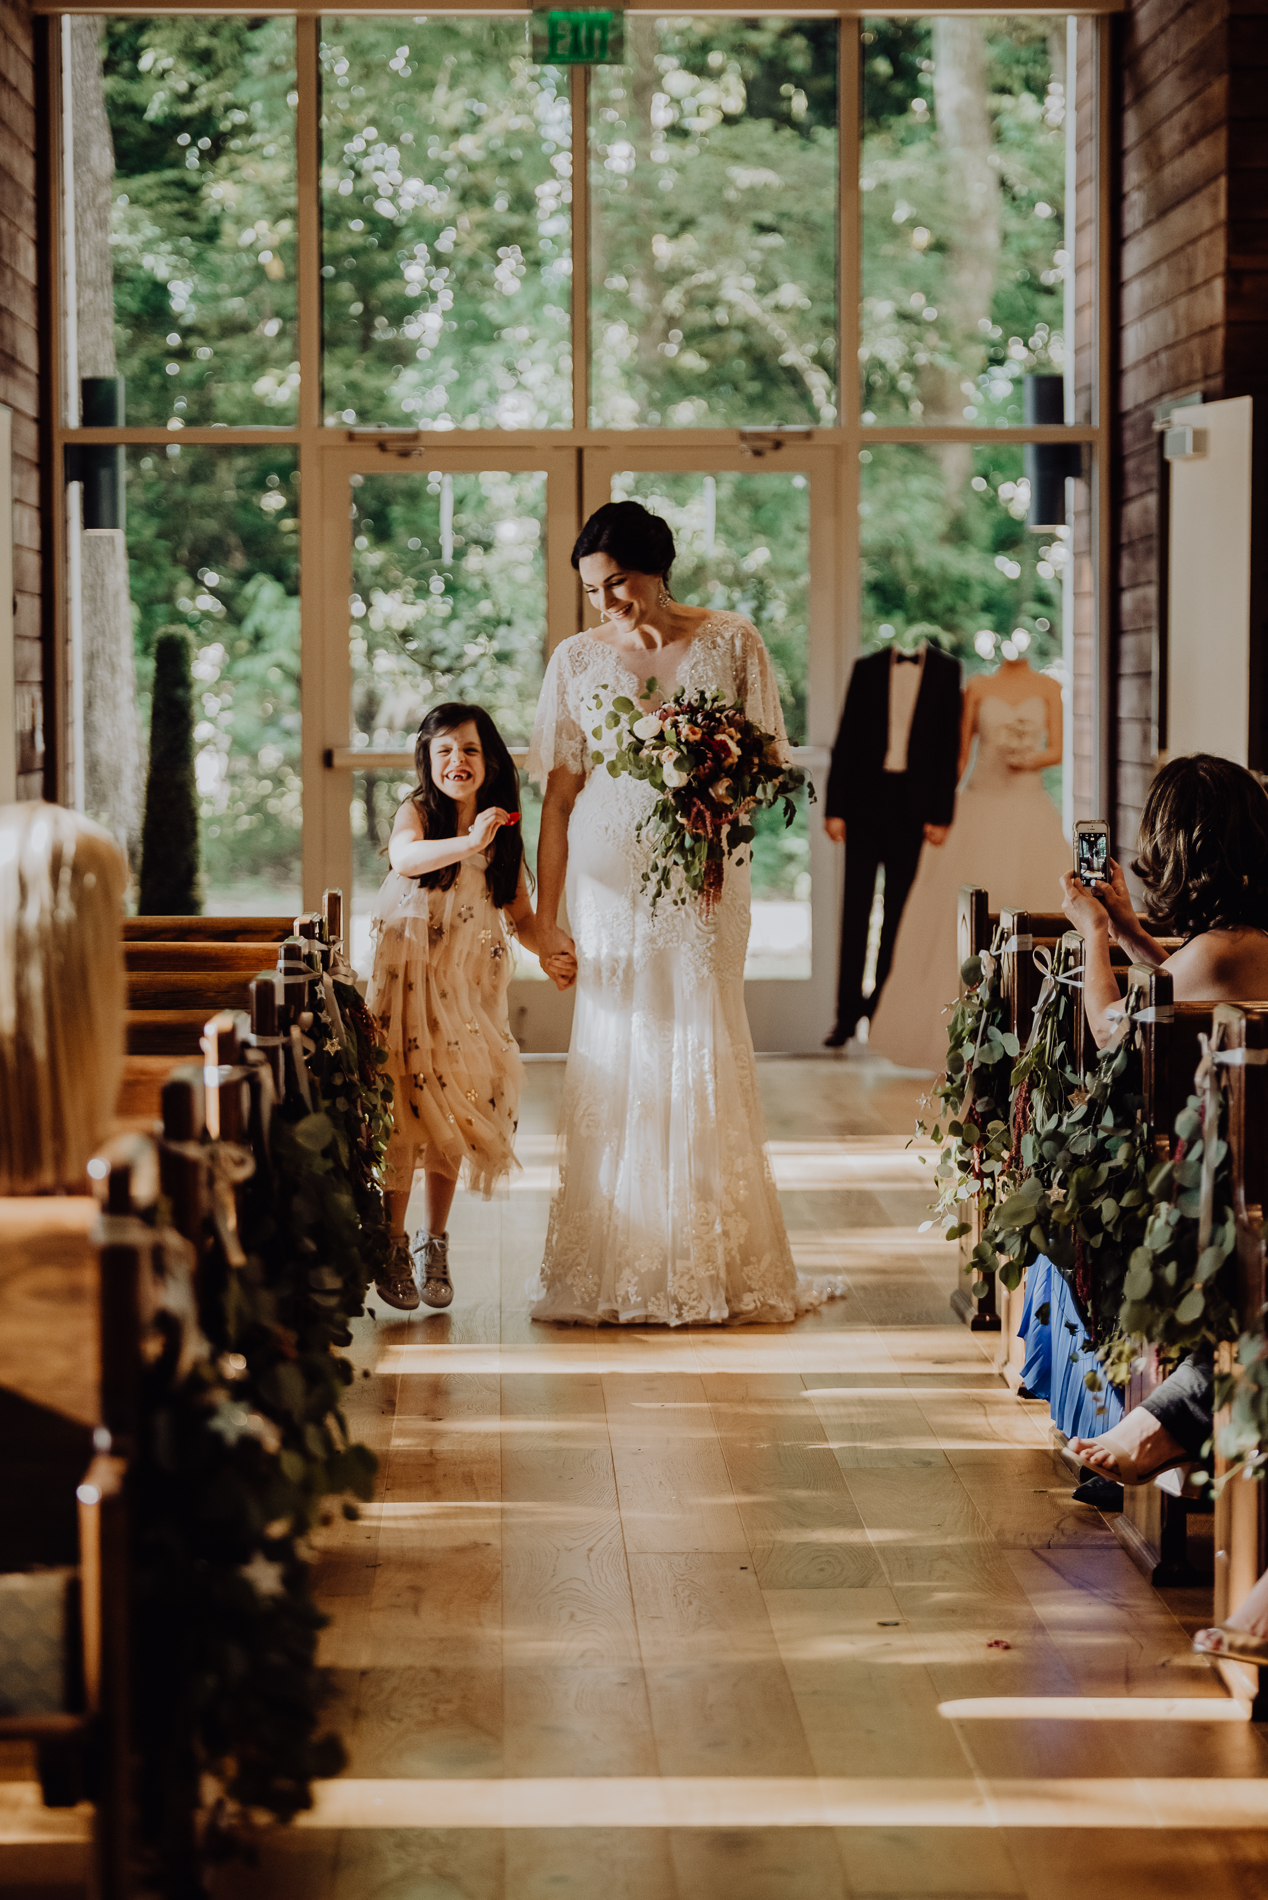 julia and dennis wedding at graceland by wilde company-107.jpg